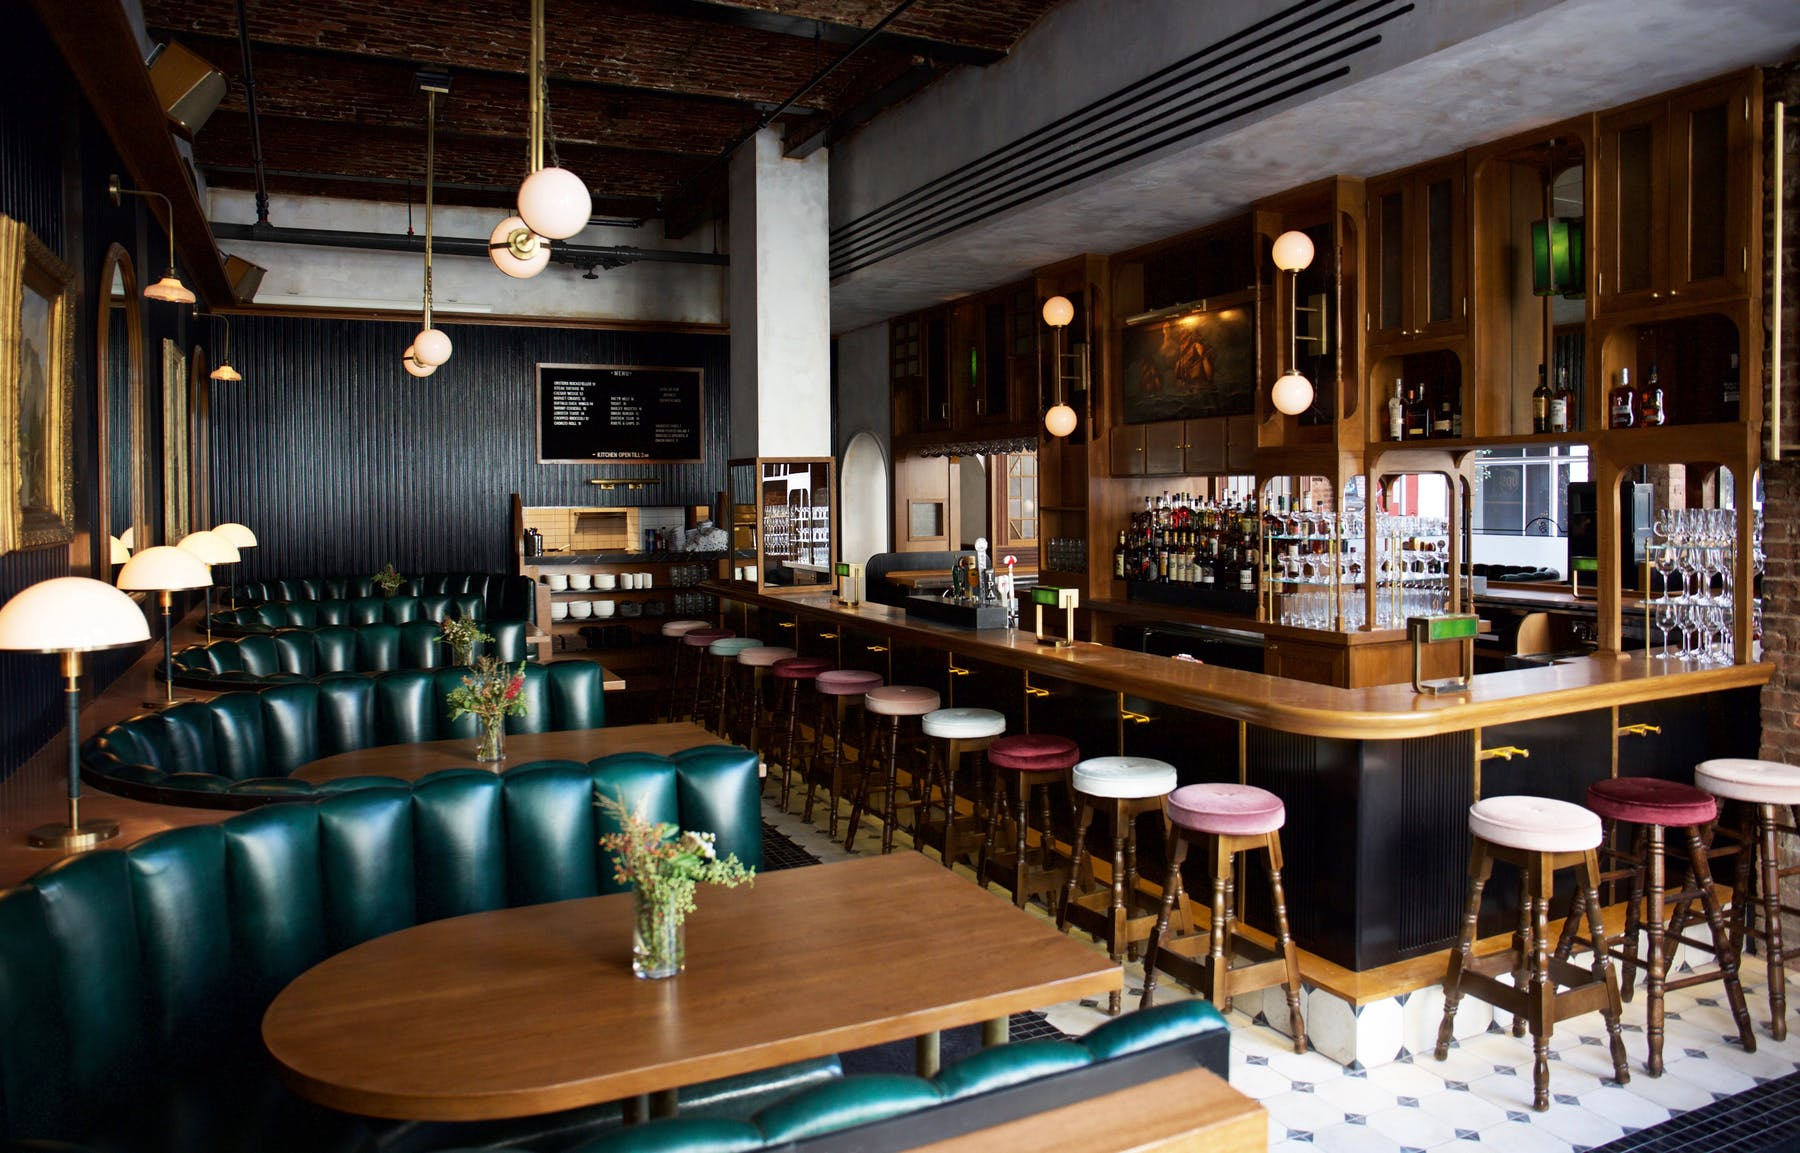 Booths and bar stools